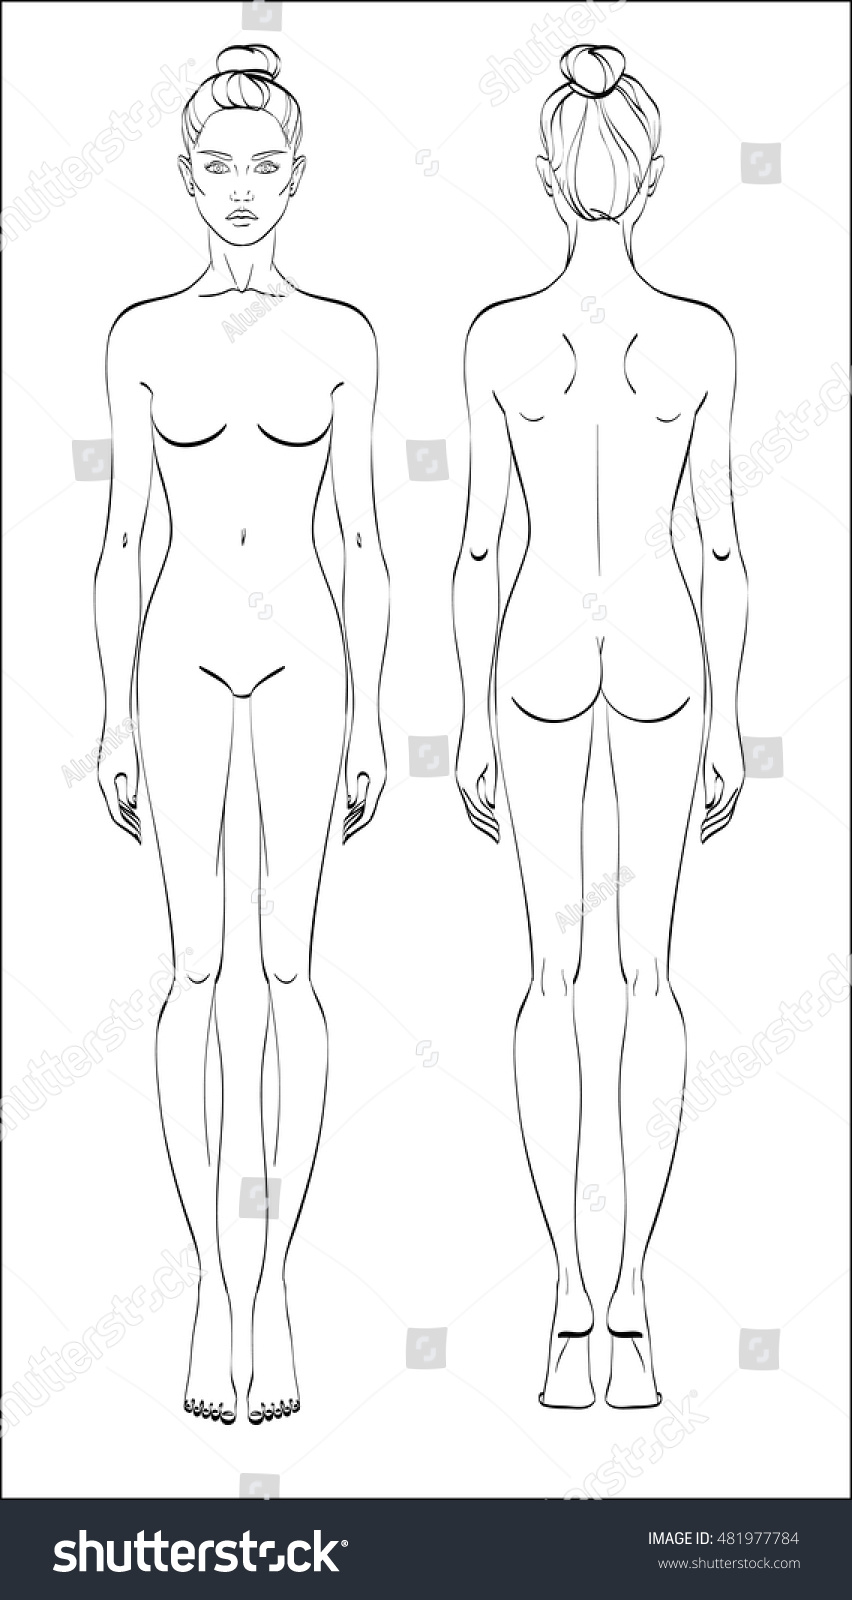 Gallery For Male Body Template For Costume Design For School